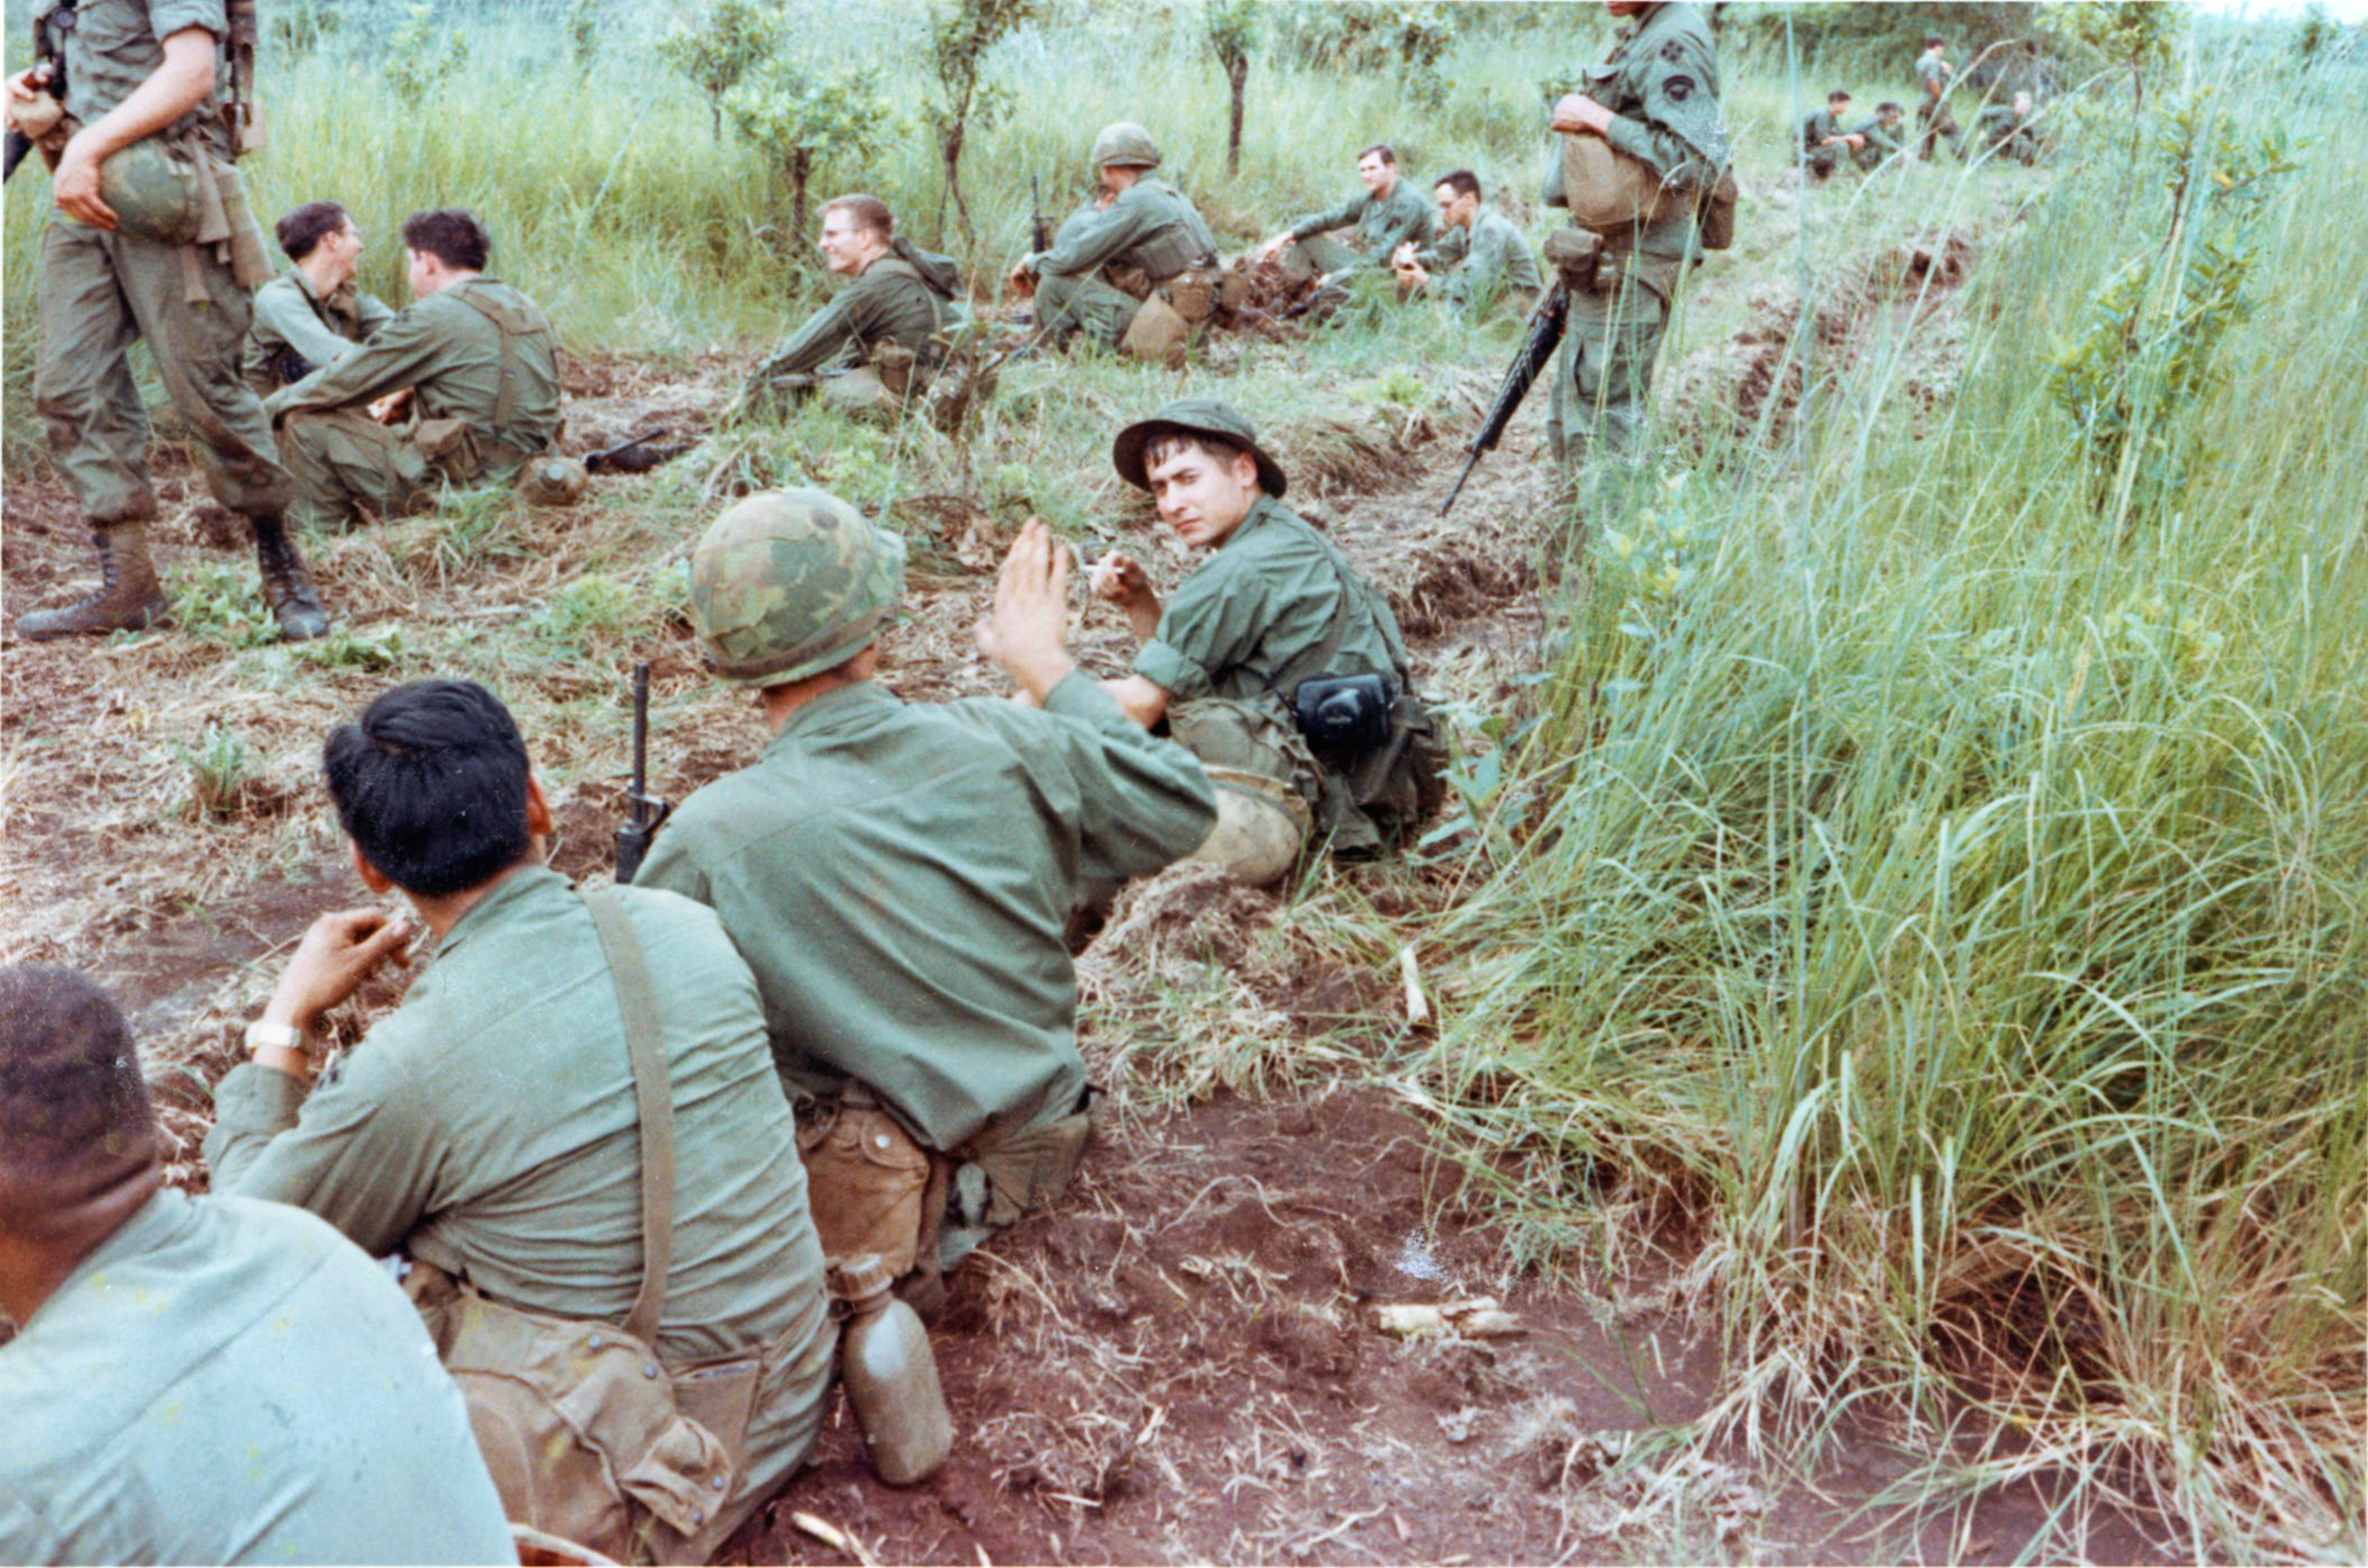 Jere Meacham on patrol in Vietnam with other members of the U.S. Army's Fourth Infantry Division. He sent the images to his son in 1999